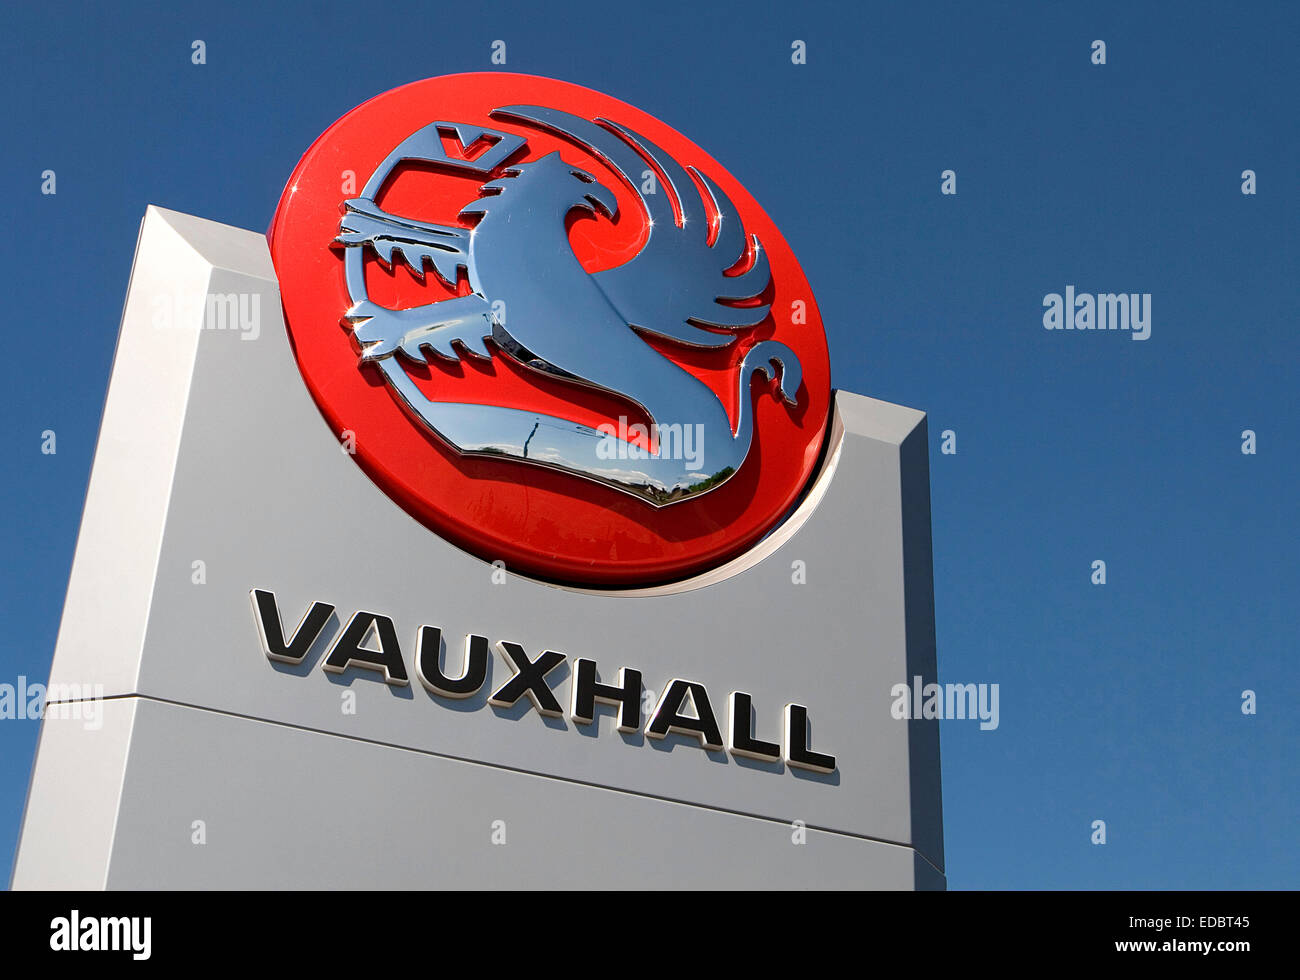 Illustrative Image Of Vauxhall Cars Part Of The General Motors